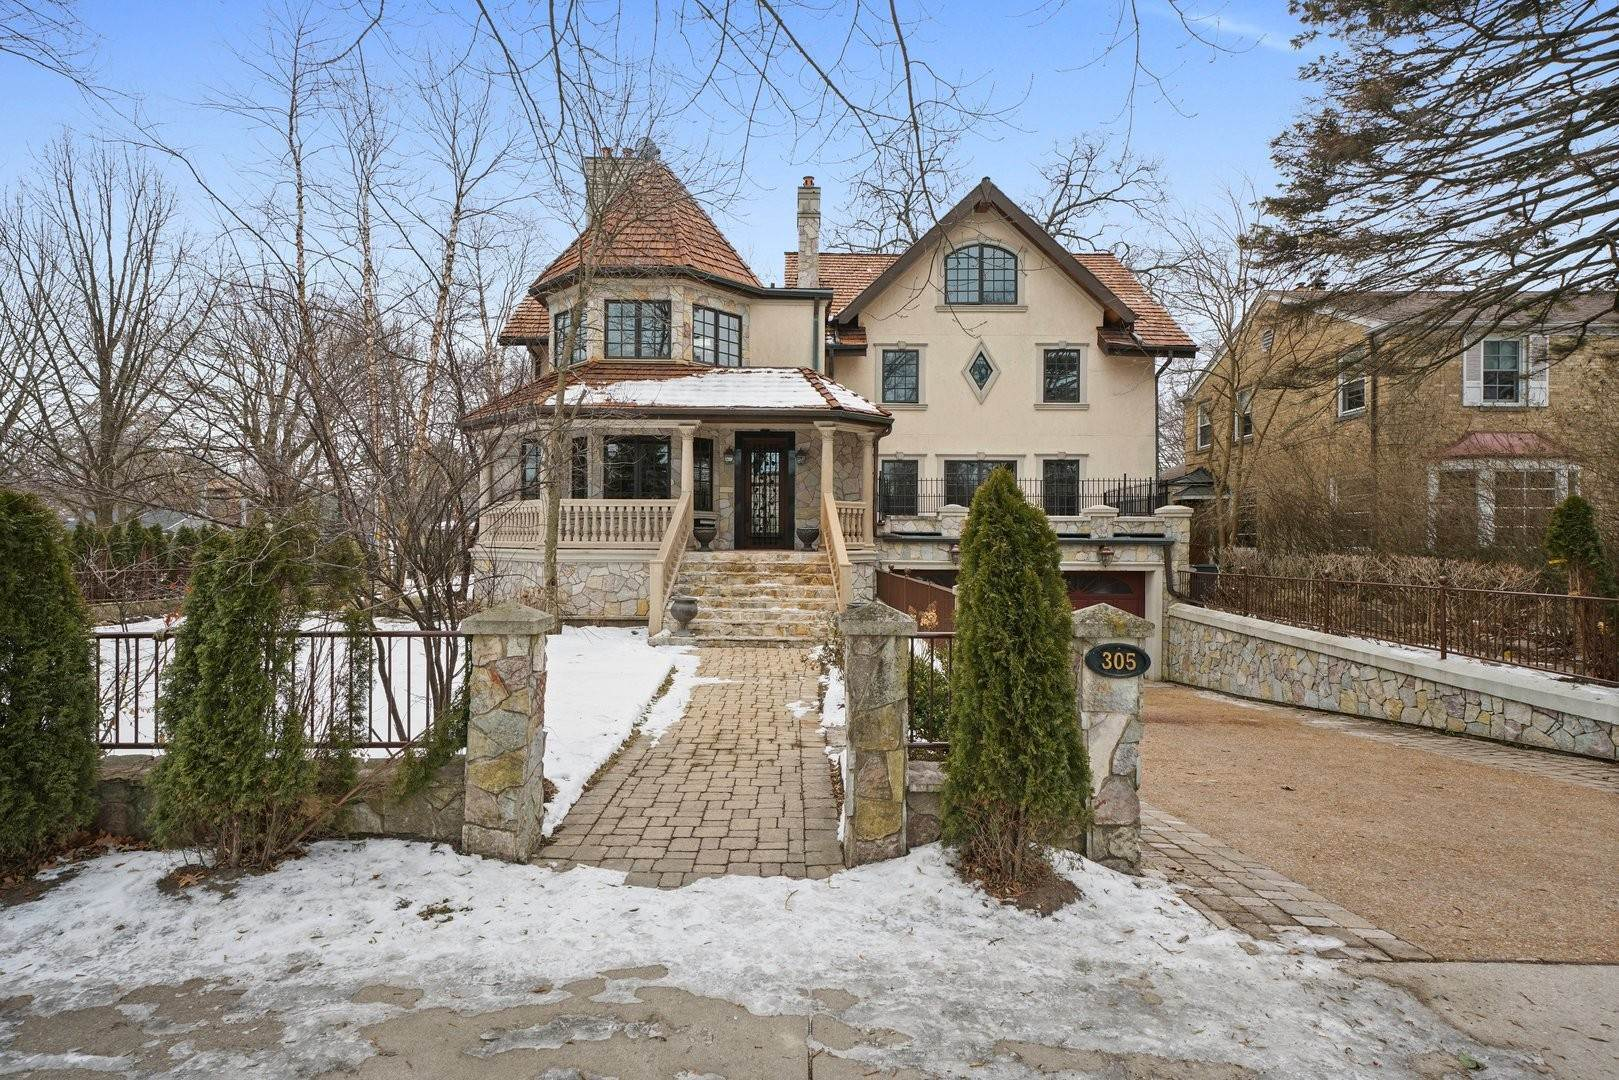 Single Family Homes for Sale at 305 Central Avenue Wilmette, Illinois 60091 United States